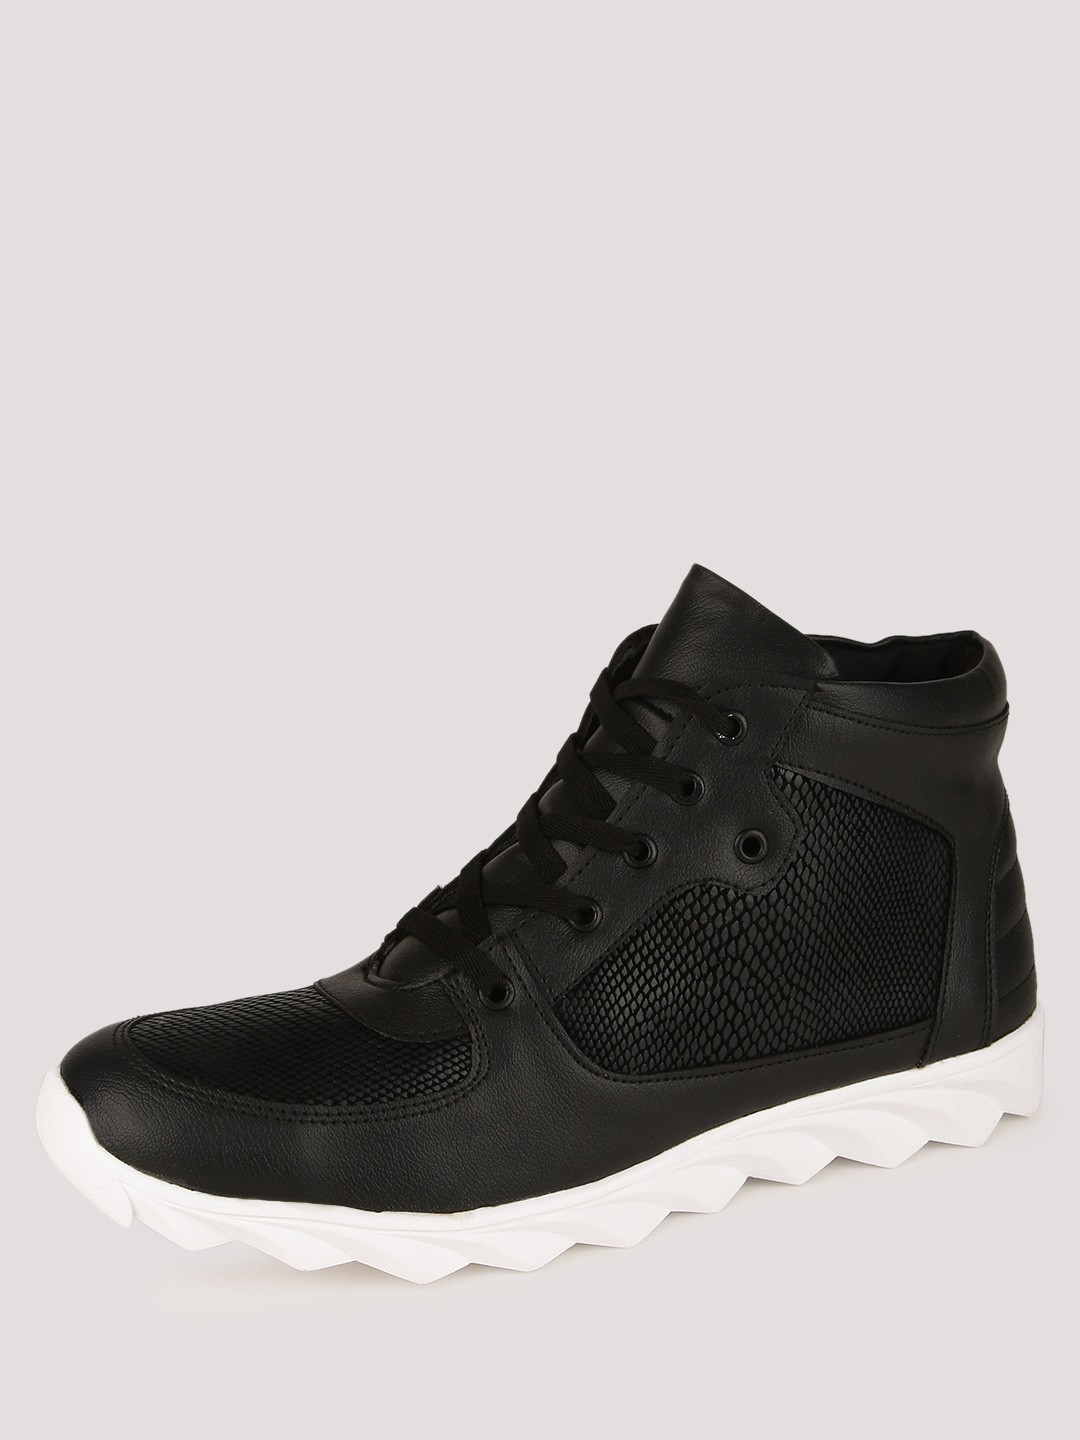 Buy online shoes for mens